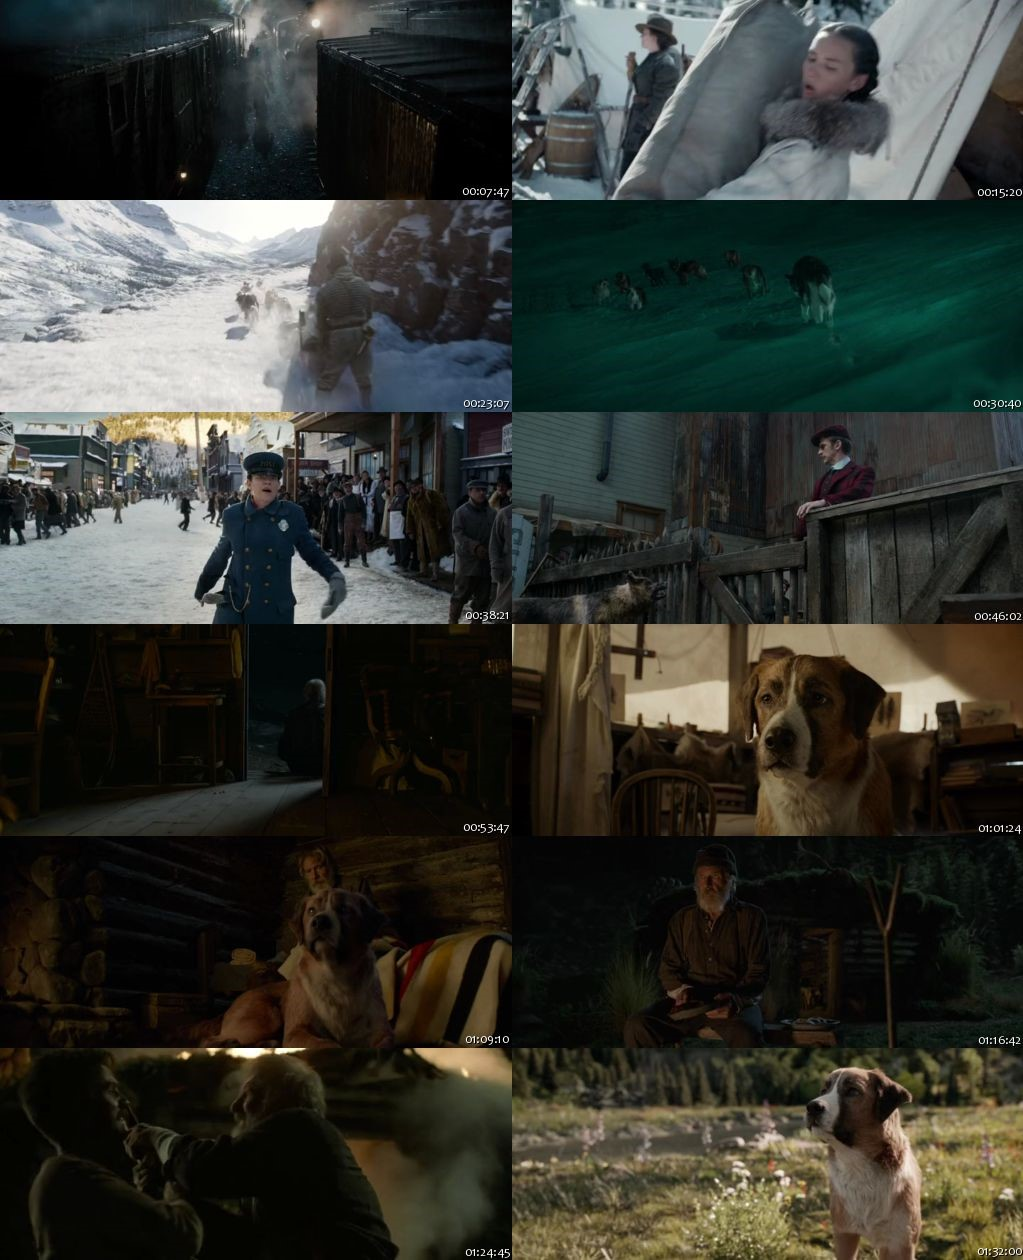 The Call Of The Wild 2020 HDRip 480p 300Mb [English]